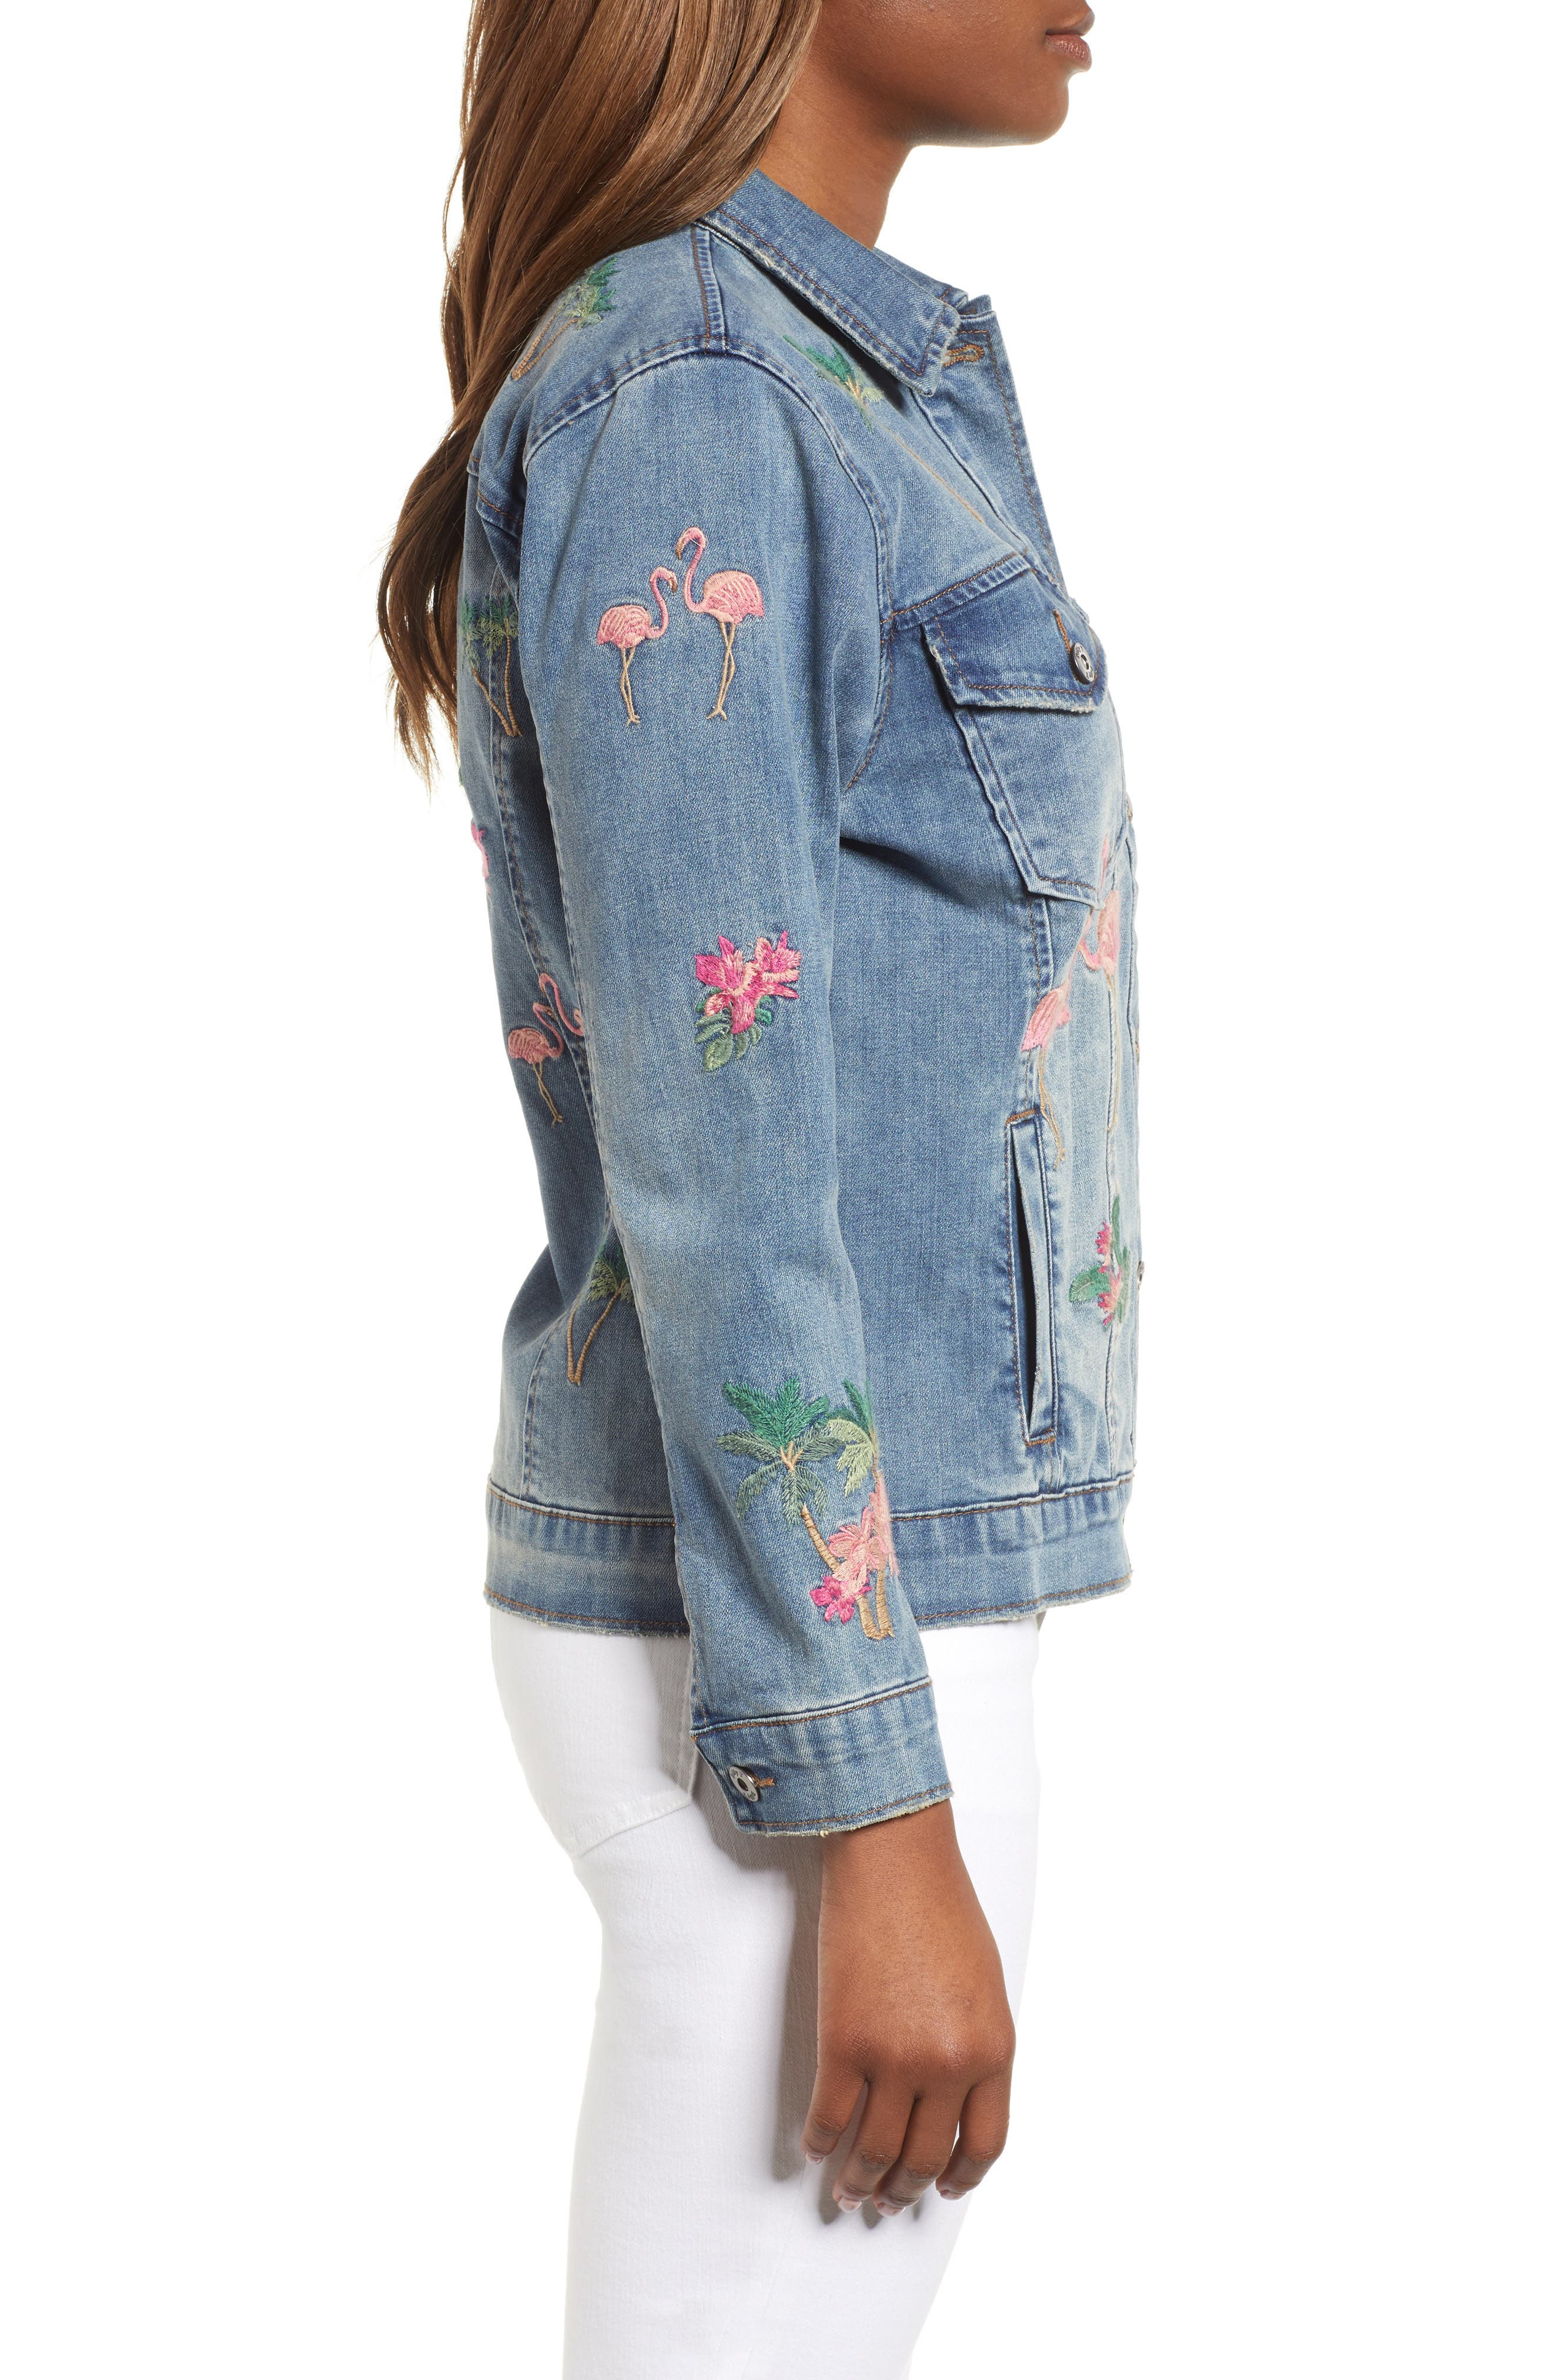 Flamingo Embroidered Denim Jacket,                             Alternate thumbnail 3, color,                             421